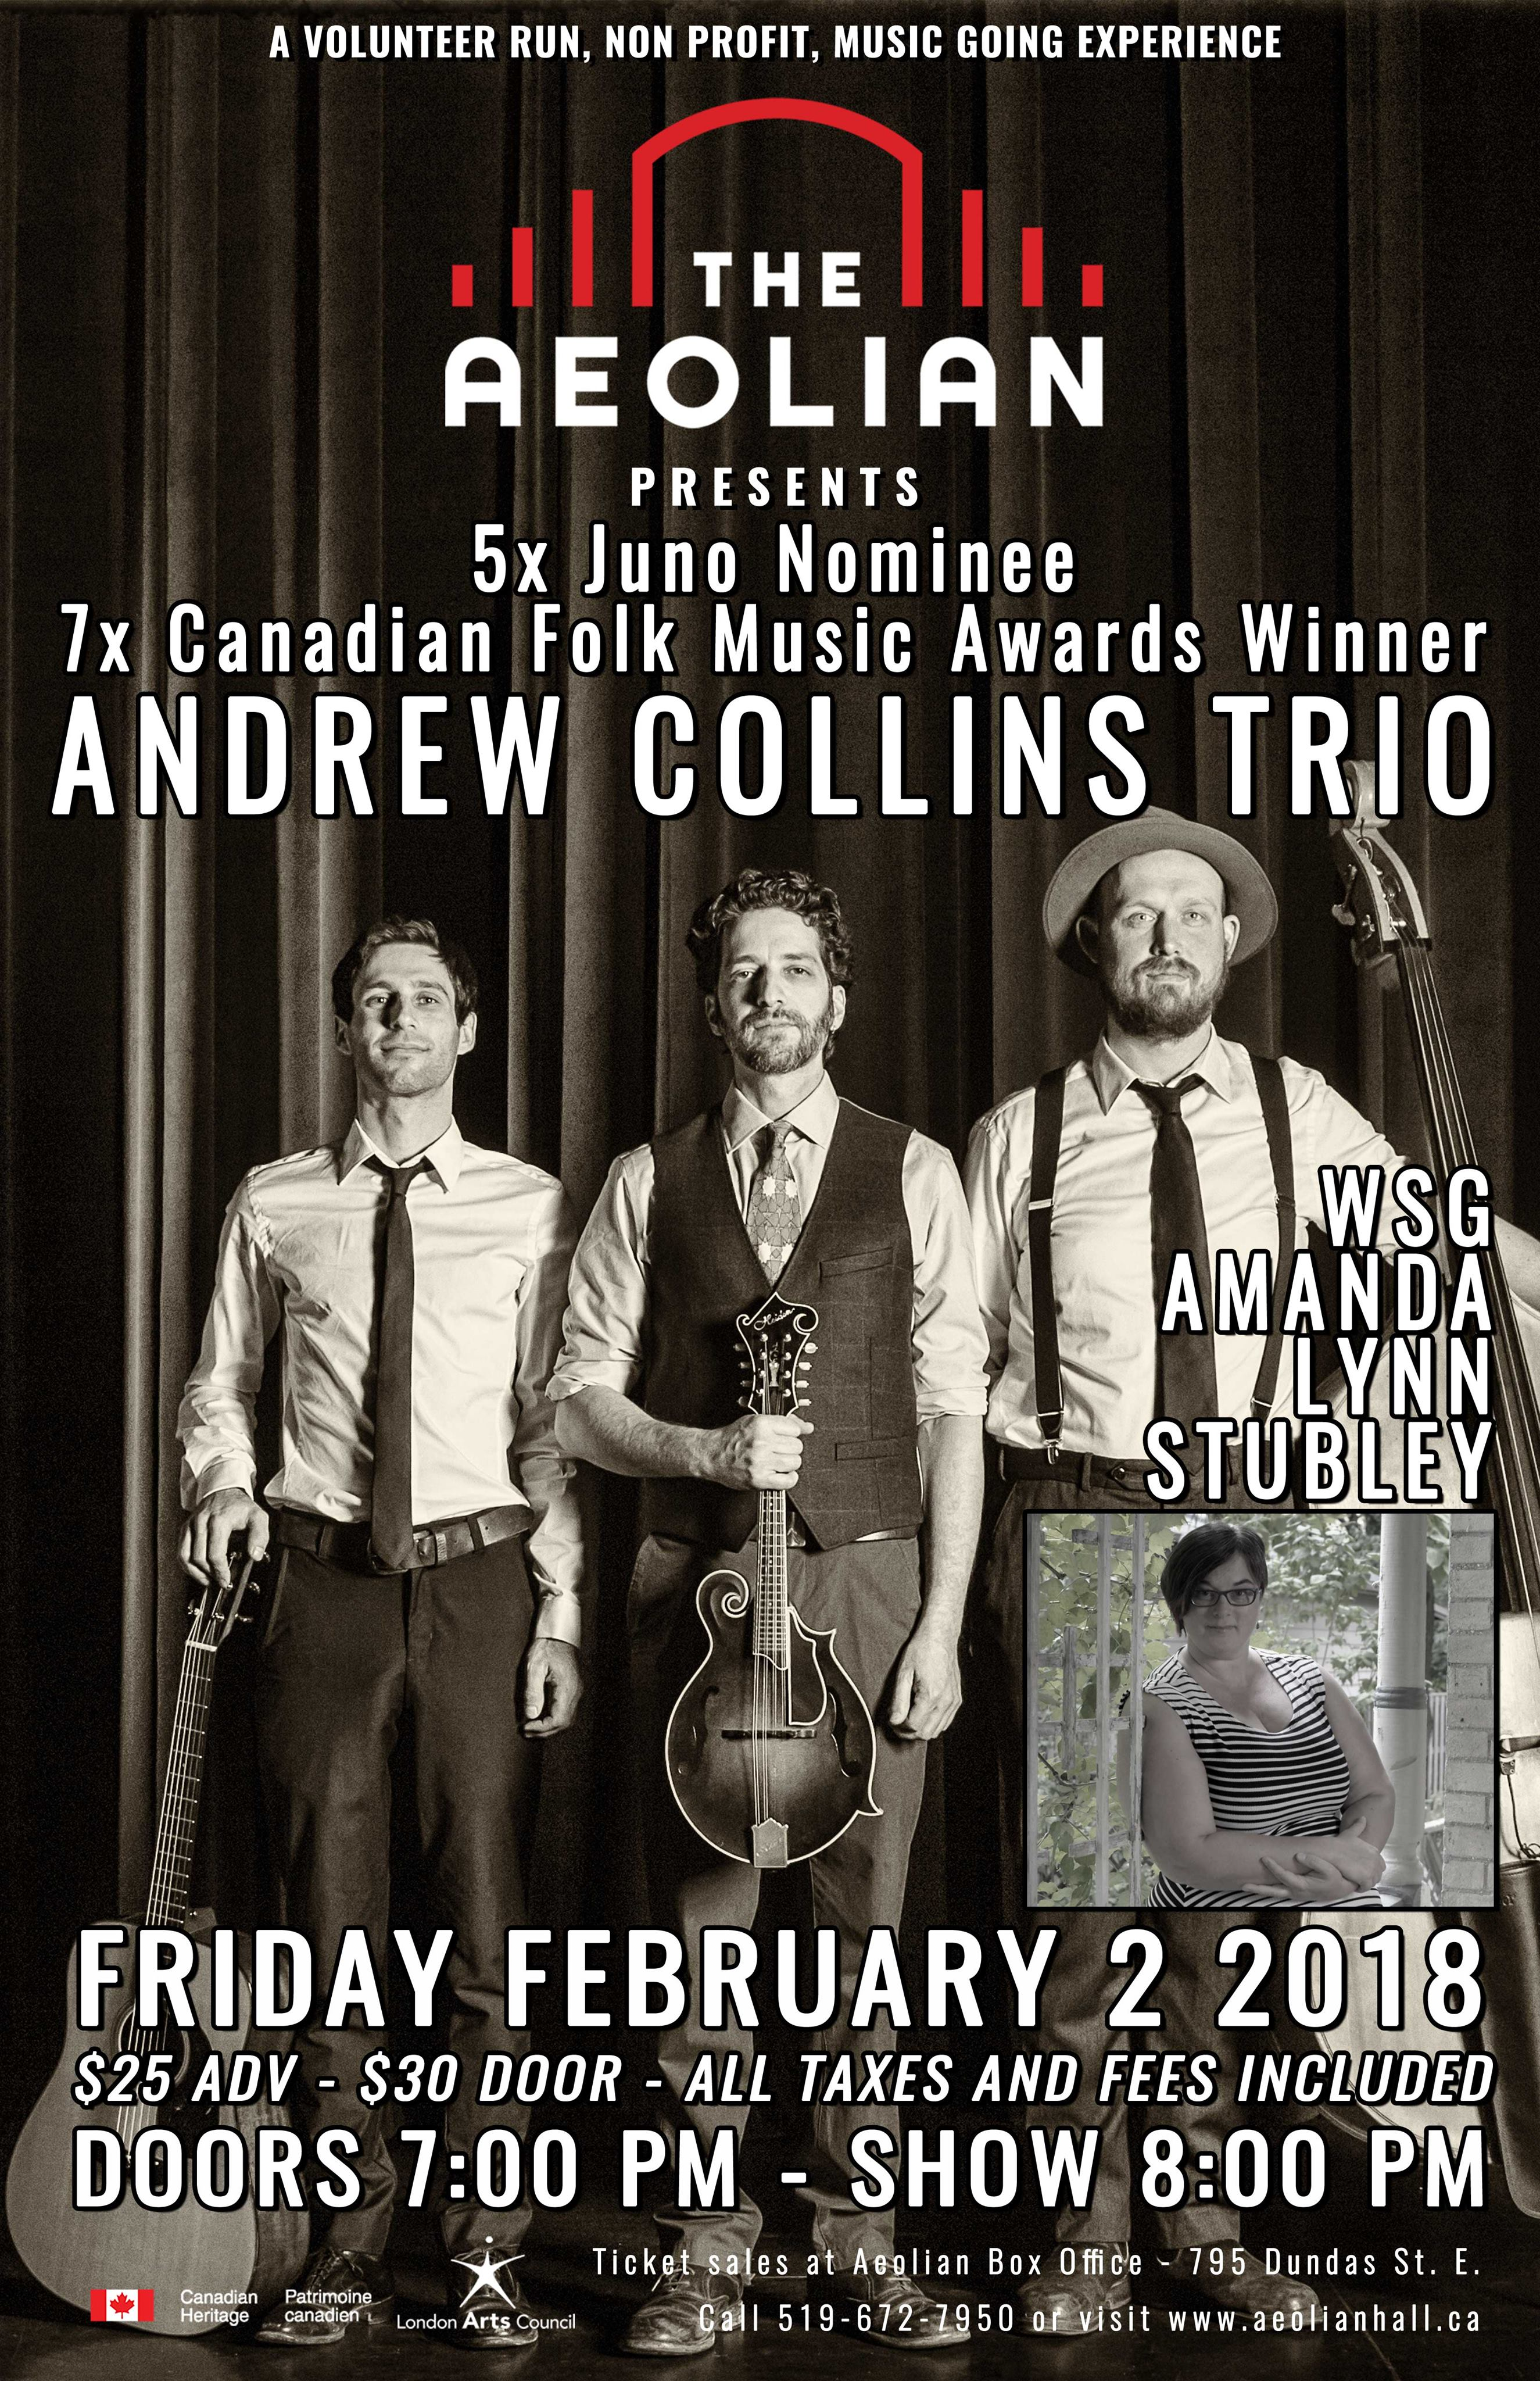 Andrew Collins Trio with special guest Amanda Lynn Stubley at Aeolian Hall Feb 2 2018